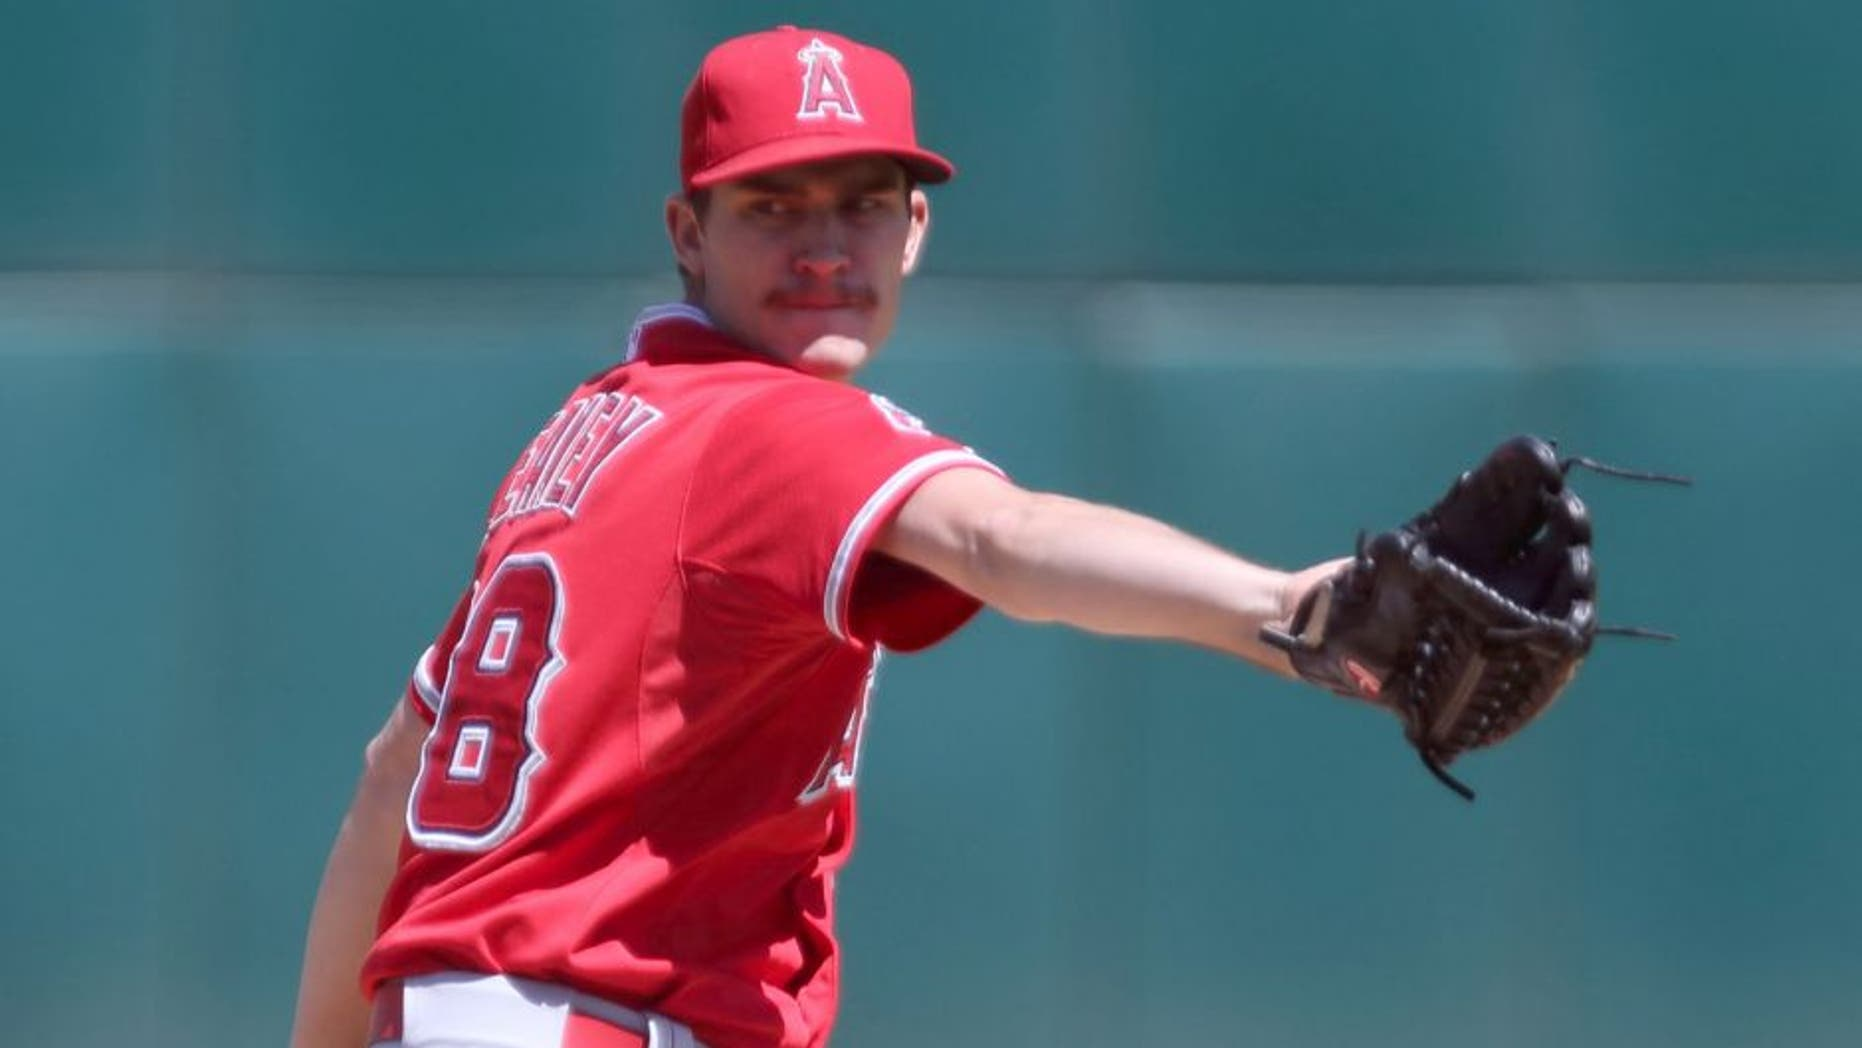 Sep 2, 2015; Oakland, CA, USA; Los Angeles Angels starting pitcher Andrew Heaney (28) pitches the ball against the Oakland Athletics during the first inning at O.co Coliseum. Mandatory Credit: Kelley L Cox-USA TODAY Sports